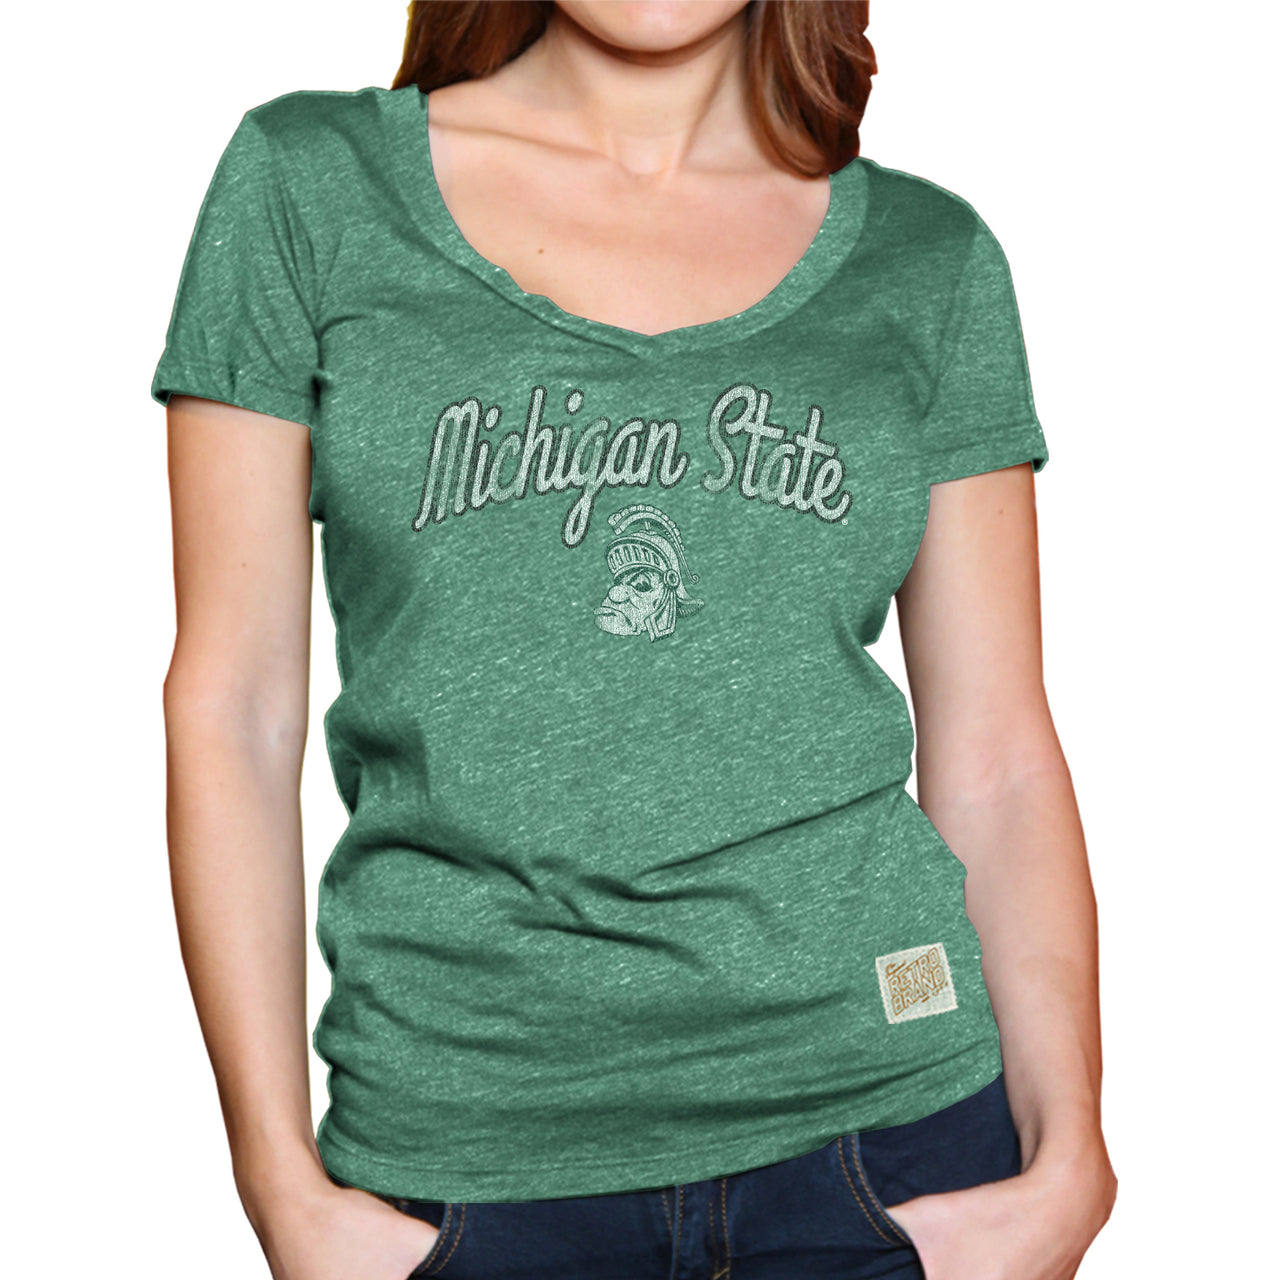 Michigan State Spartans Womens Soft Triblend V-Neck T-Shirt  - Green